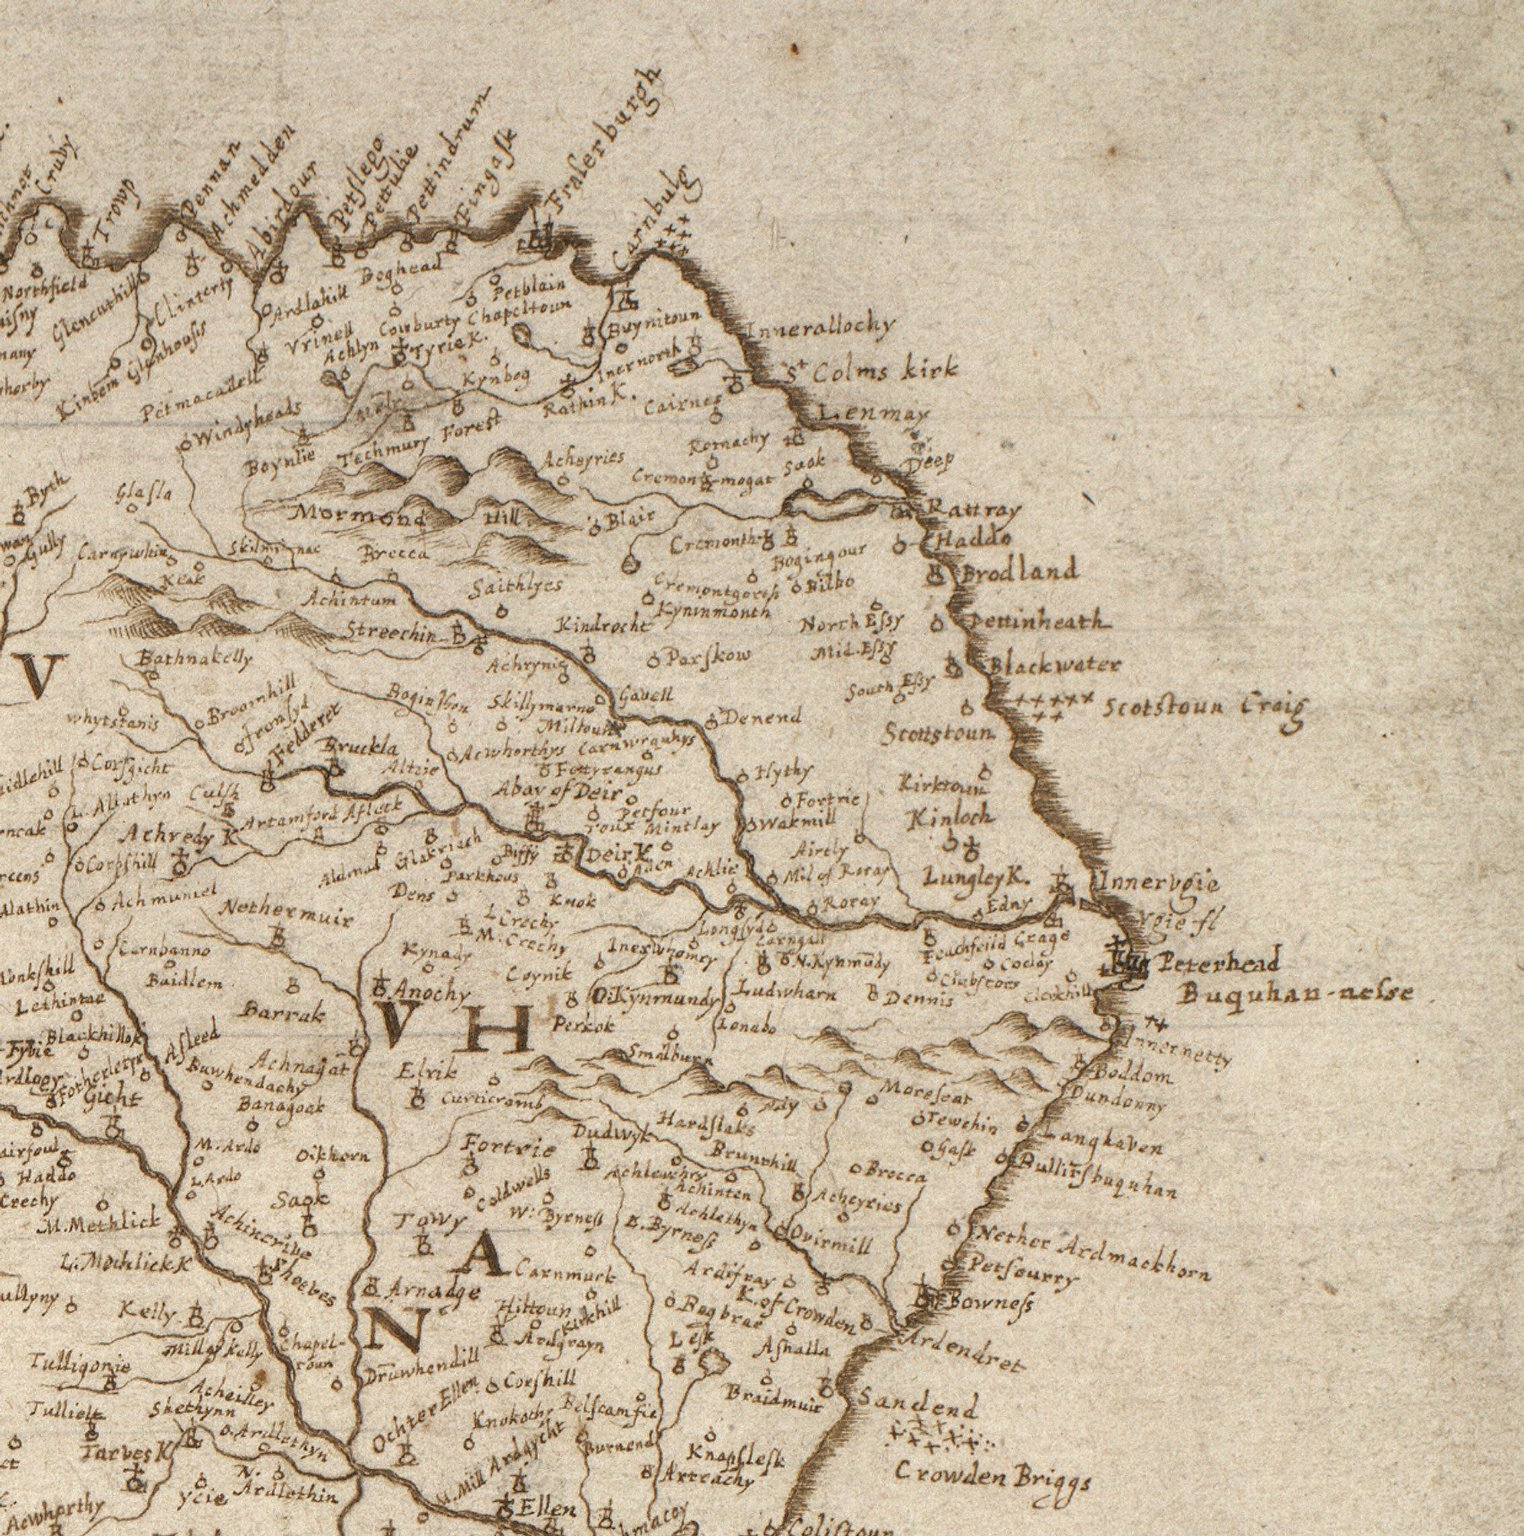 [Detail from:] Aberdeen, Banf, Murrey &c. to Invernes. Fra the north water to Ross. [1 of 1]